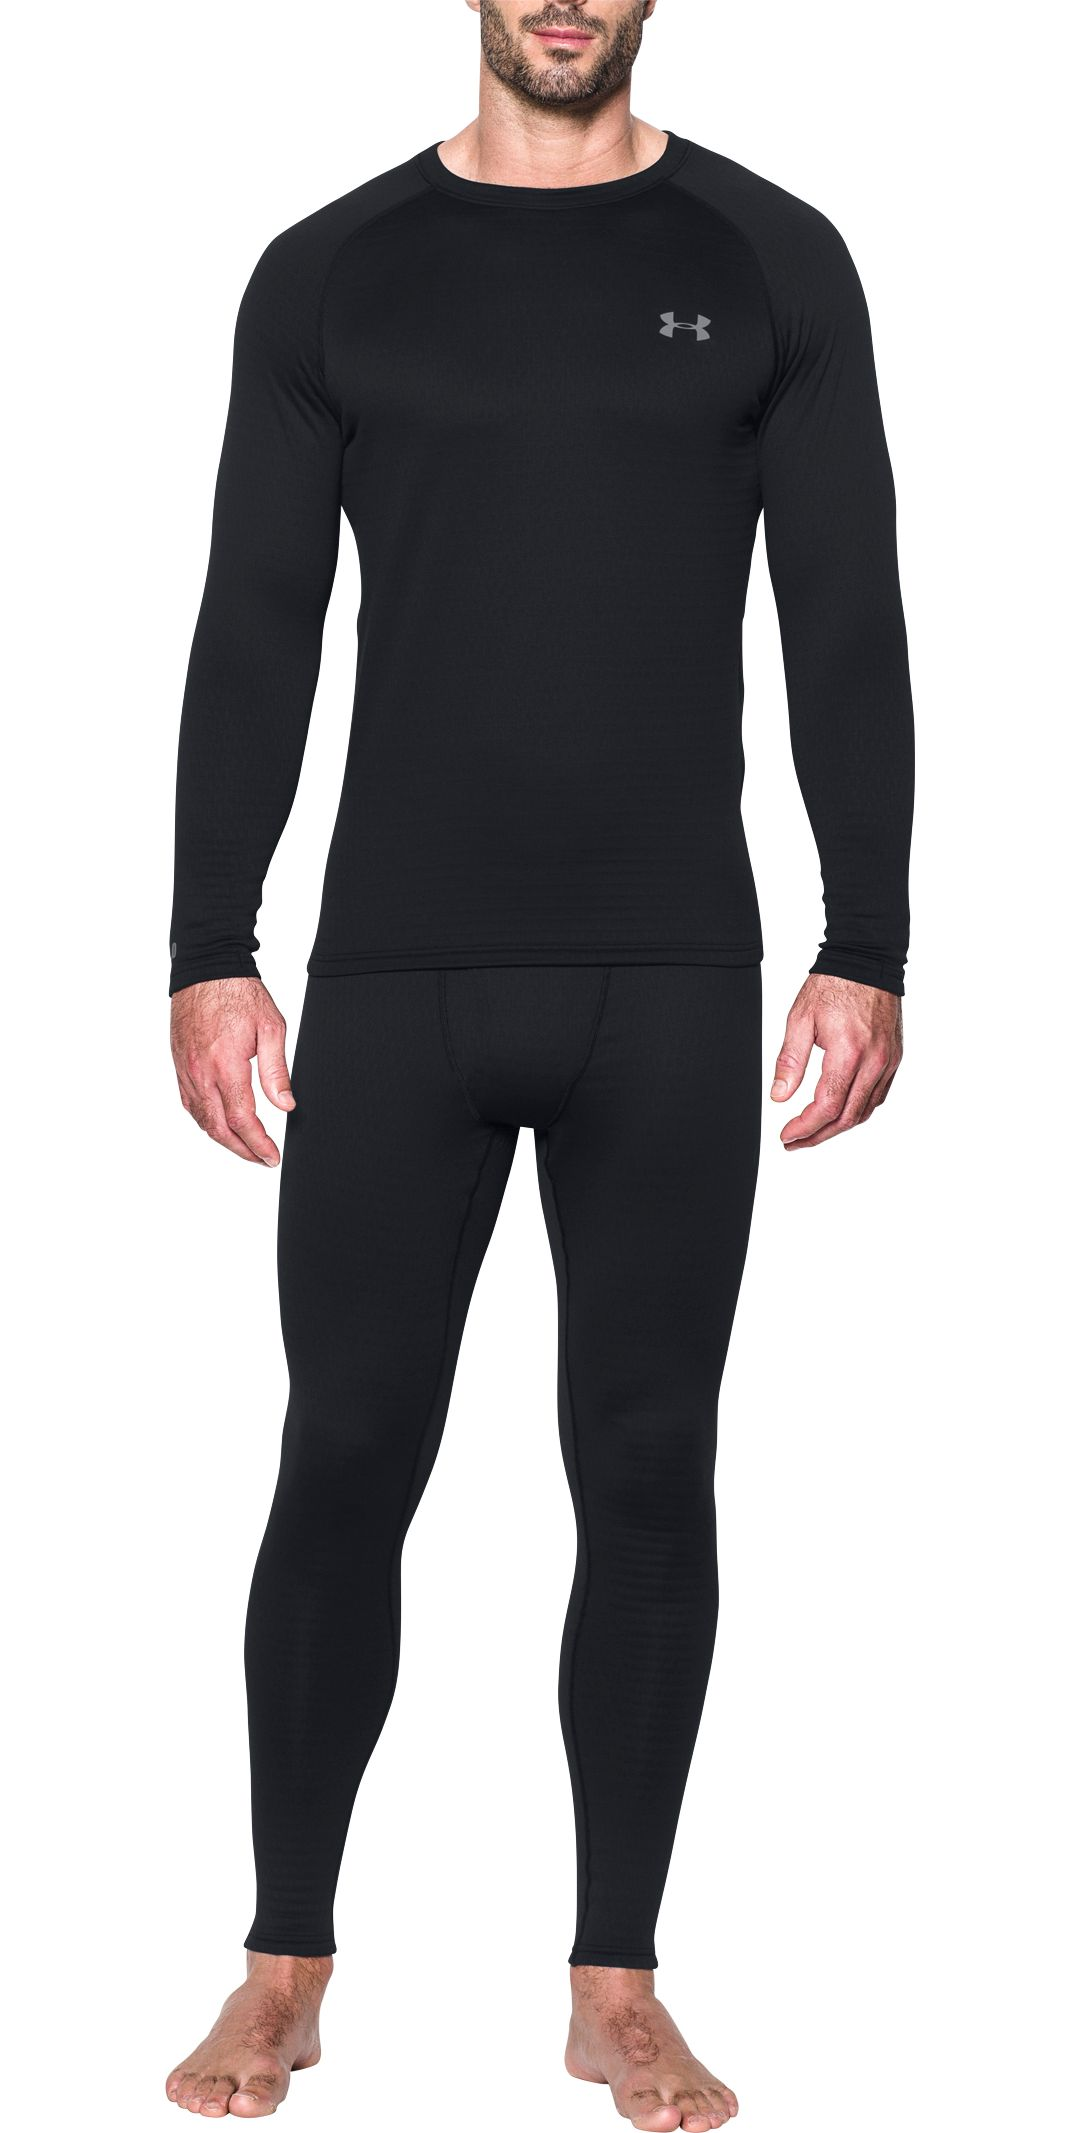 ac56433a0a4b31 Under Armour Men's 2.0 Base Layer Leggings | DICK'S Sporting Goods